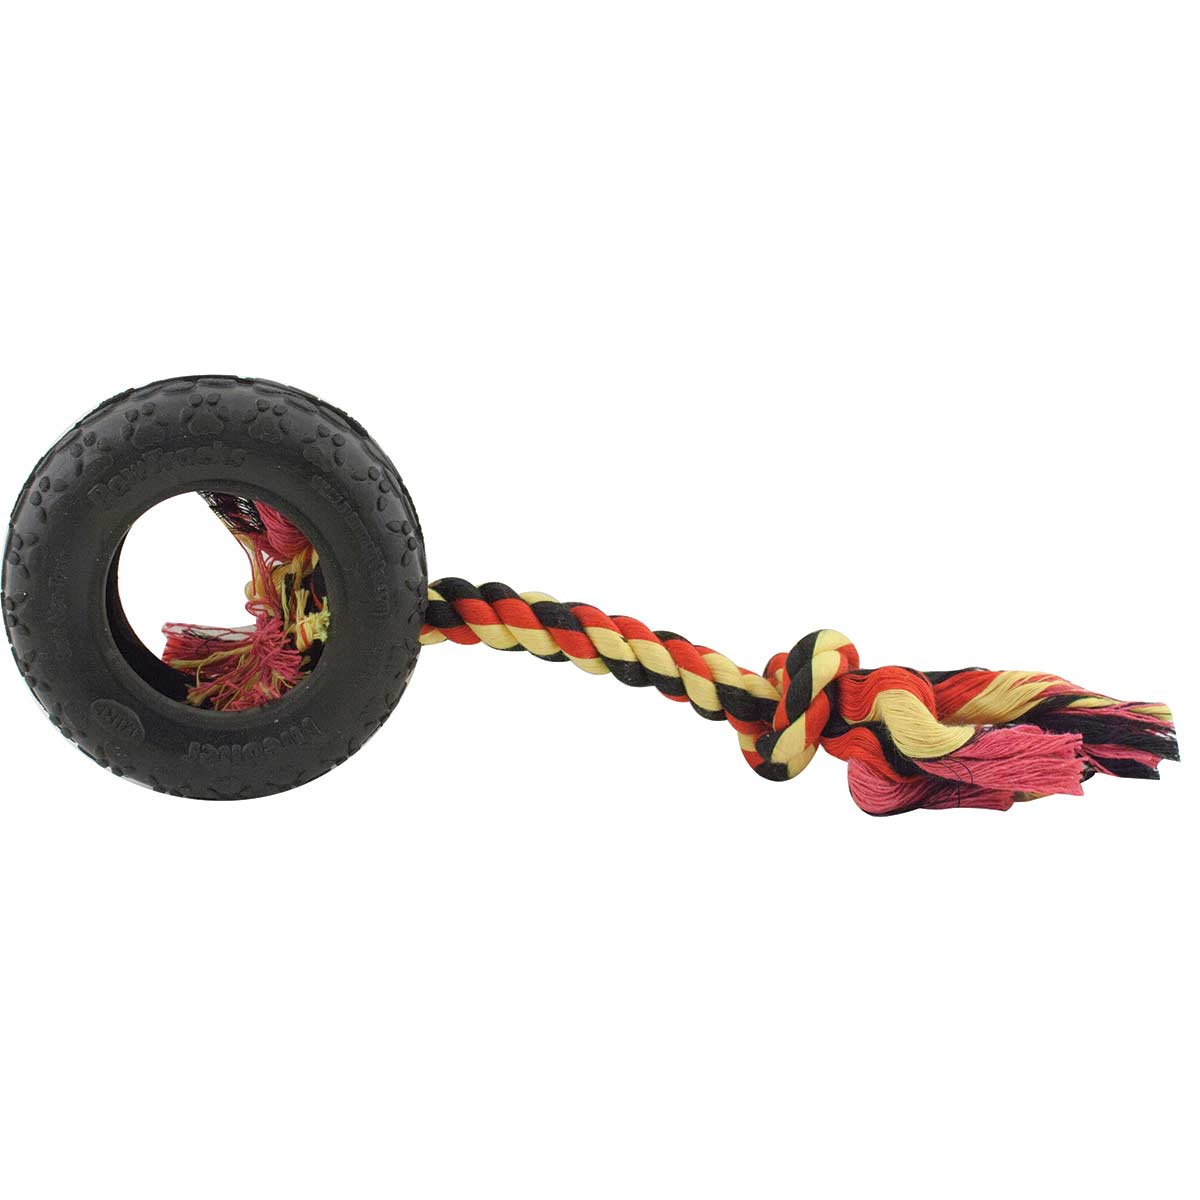 Mammoth TireBiter Small Tire Dog Toy with Rope - 6 inch